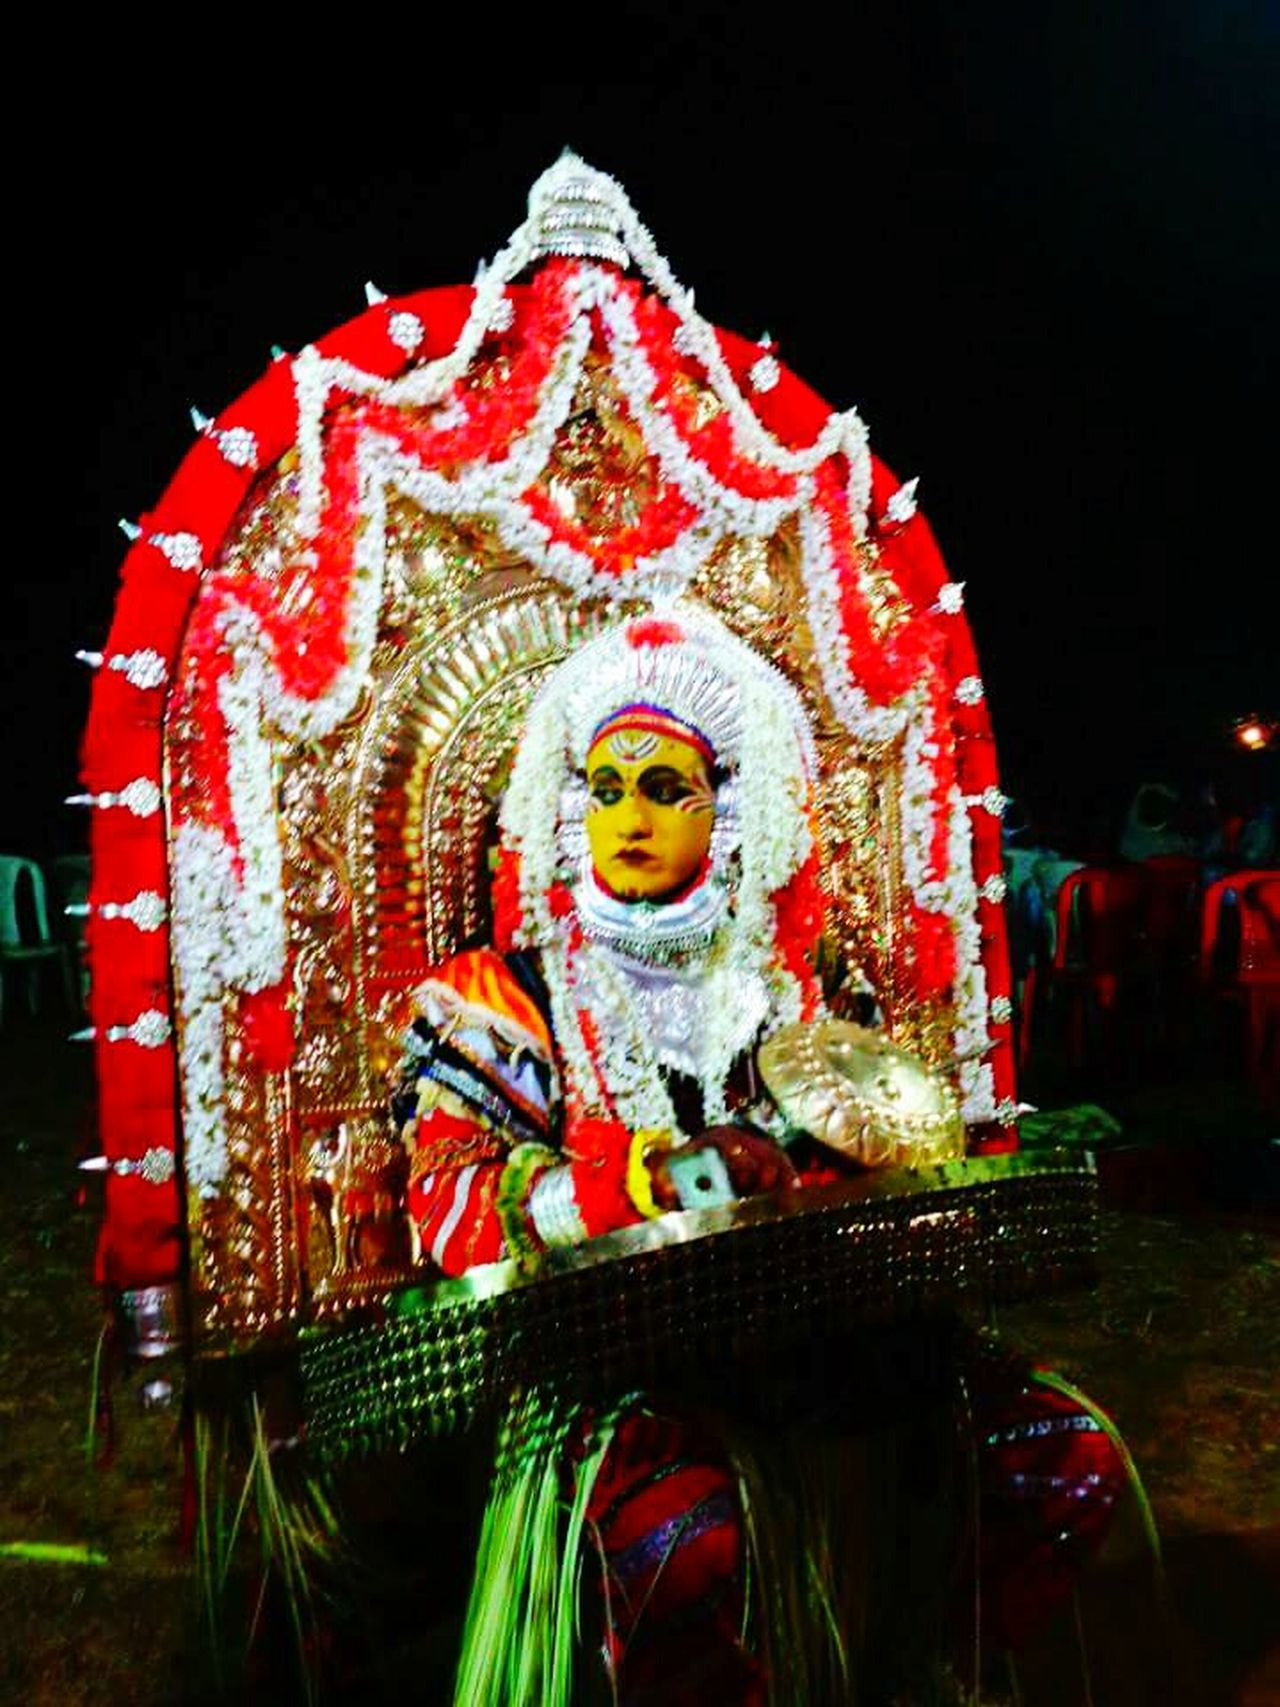 Colors Of Carnival Hindu Gods Hinduism Hindu Traditional Costume Tradition Worship Karkala Udupistation Mangaloreal Mangalore_visits Mangalore Nammaudupi Udupi Colours Of Carnival Colors Of Carnival Costume